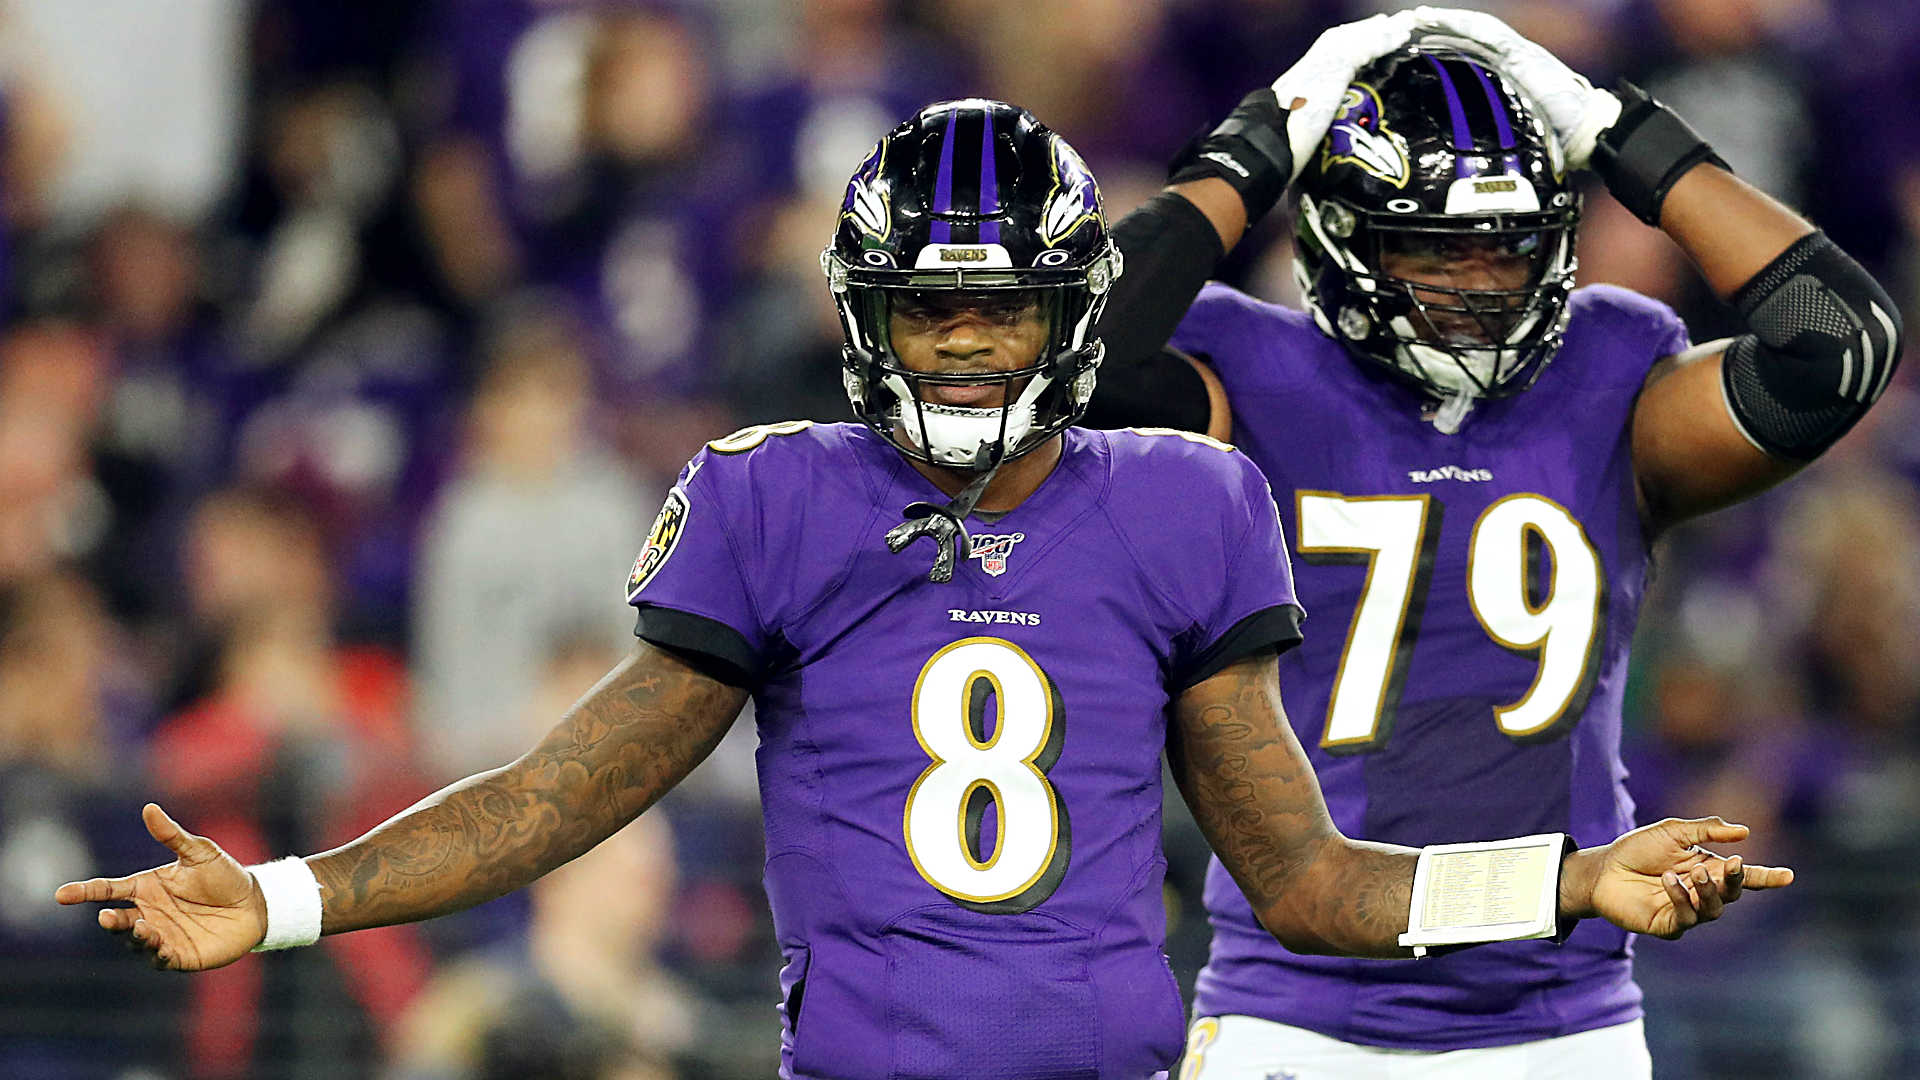 NFL predictions 2020: Final standings, playoff projections, Super Bowl 55 pick 2